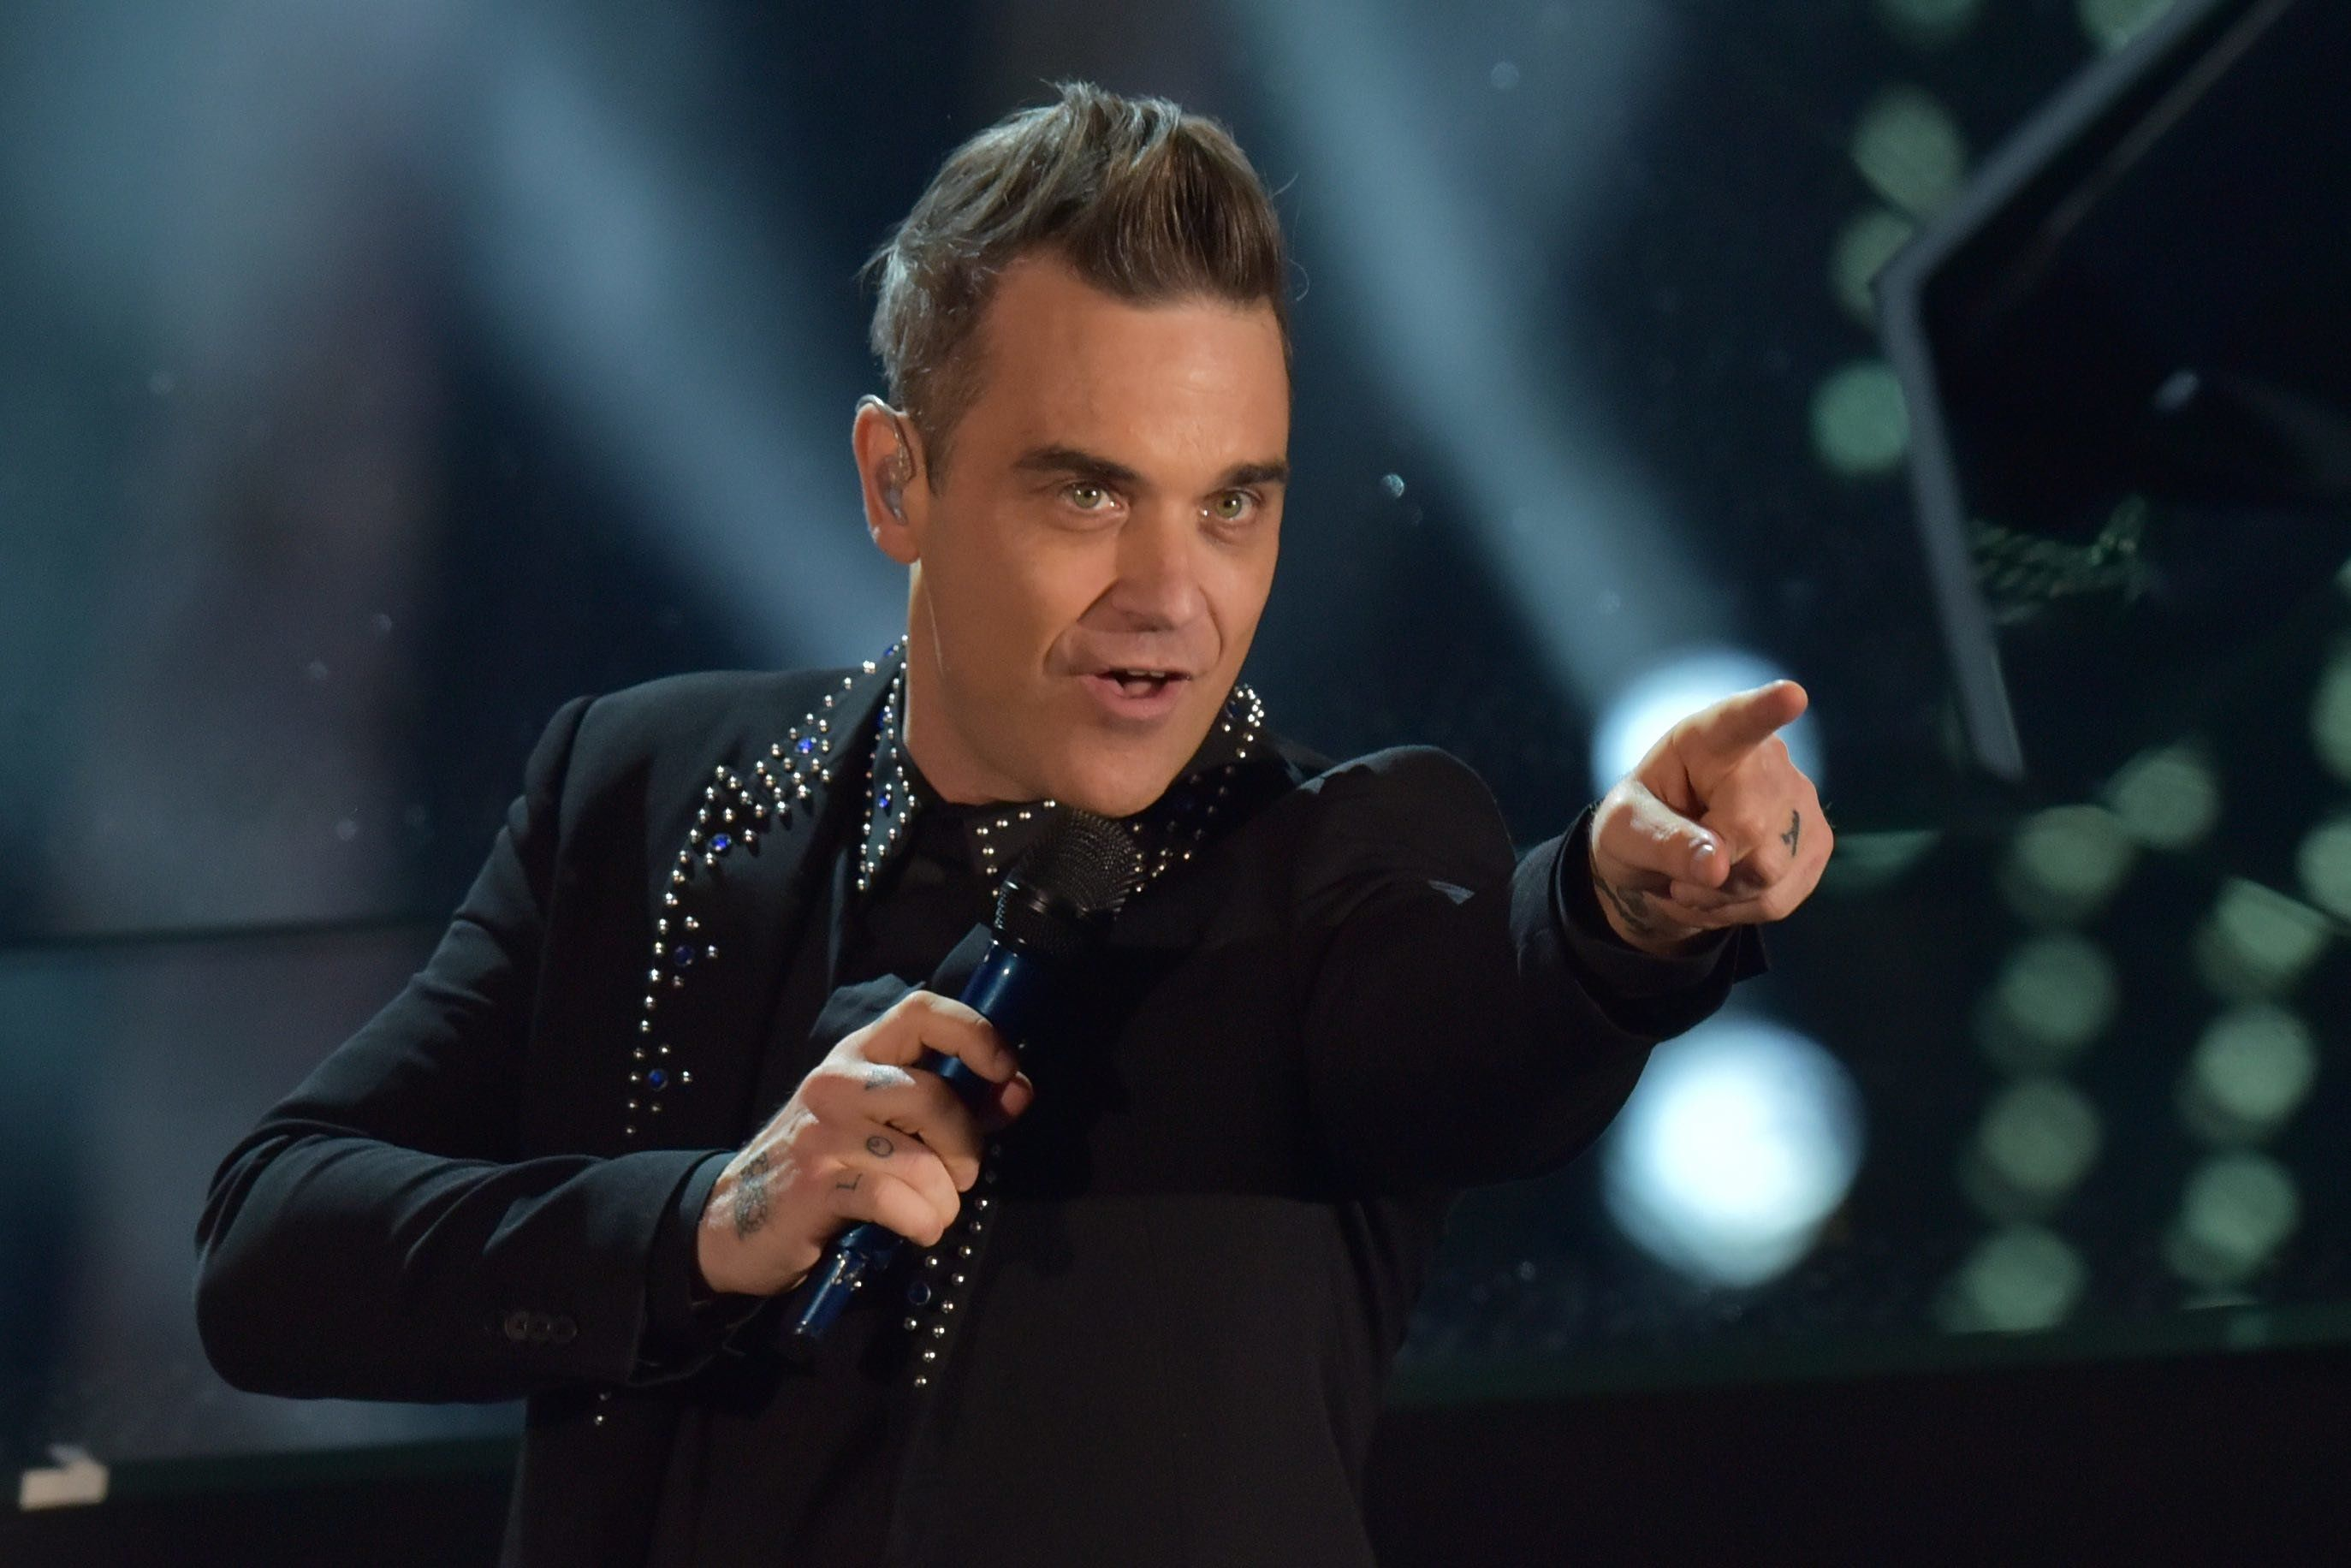 Robbie Williams Reveals Plans to Ditch 'Angels' From His Next Live Tour